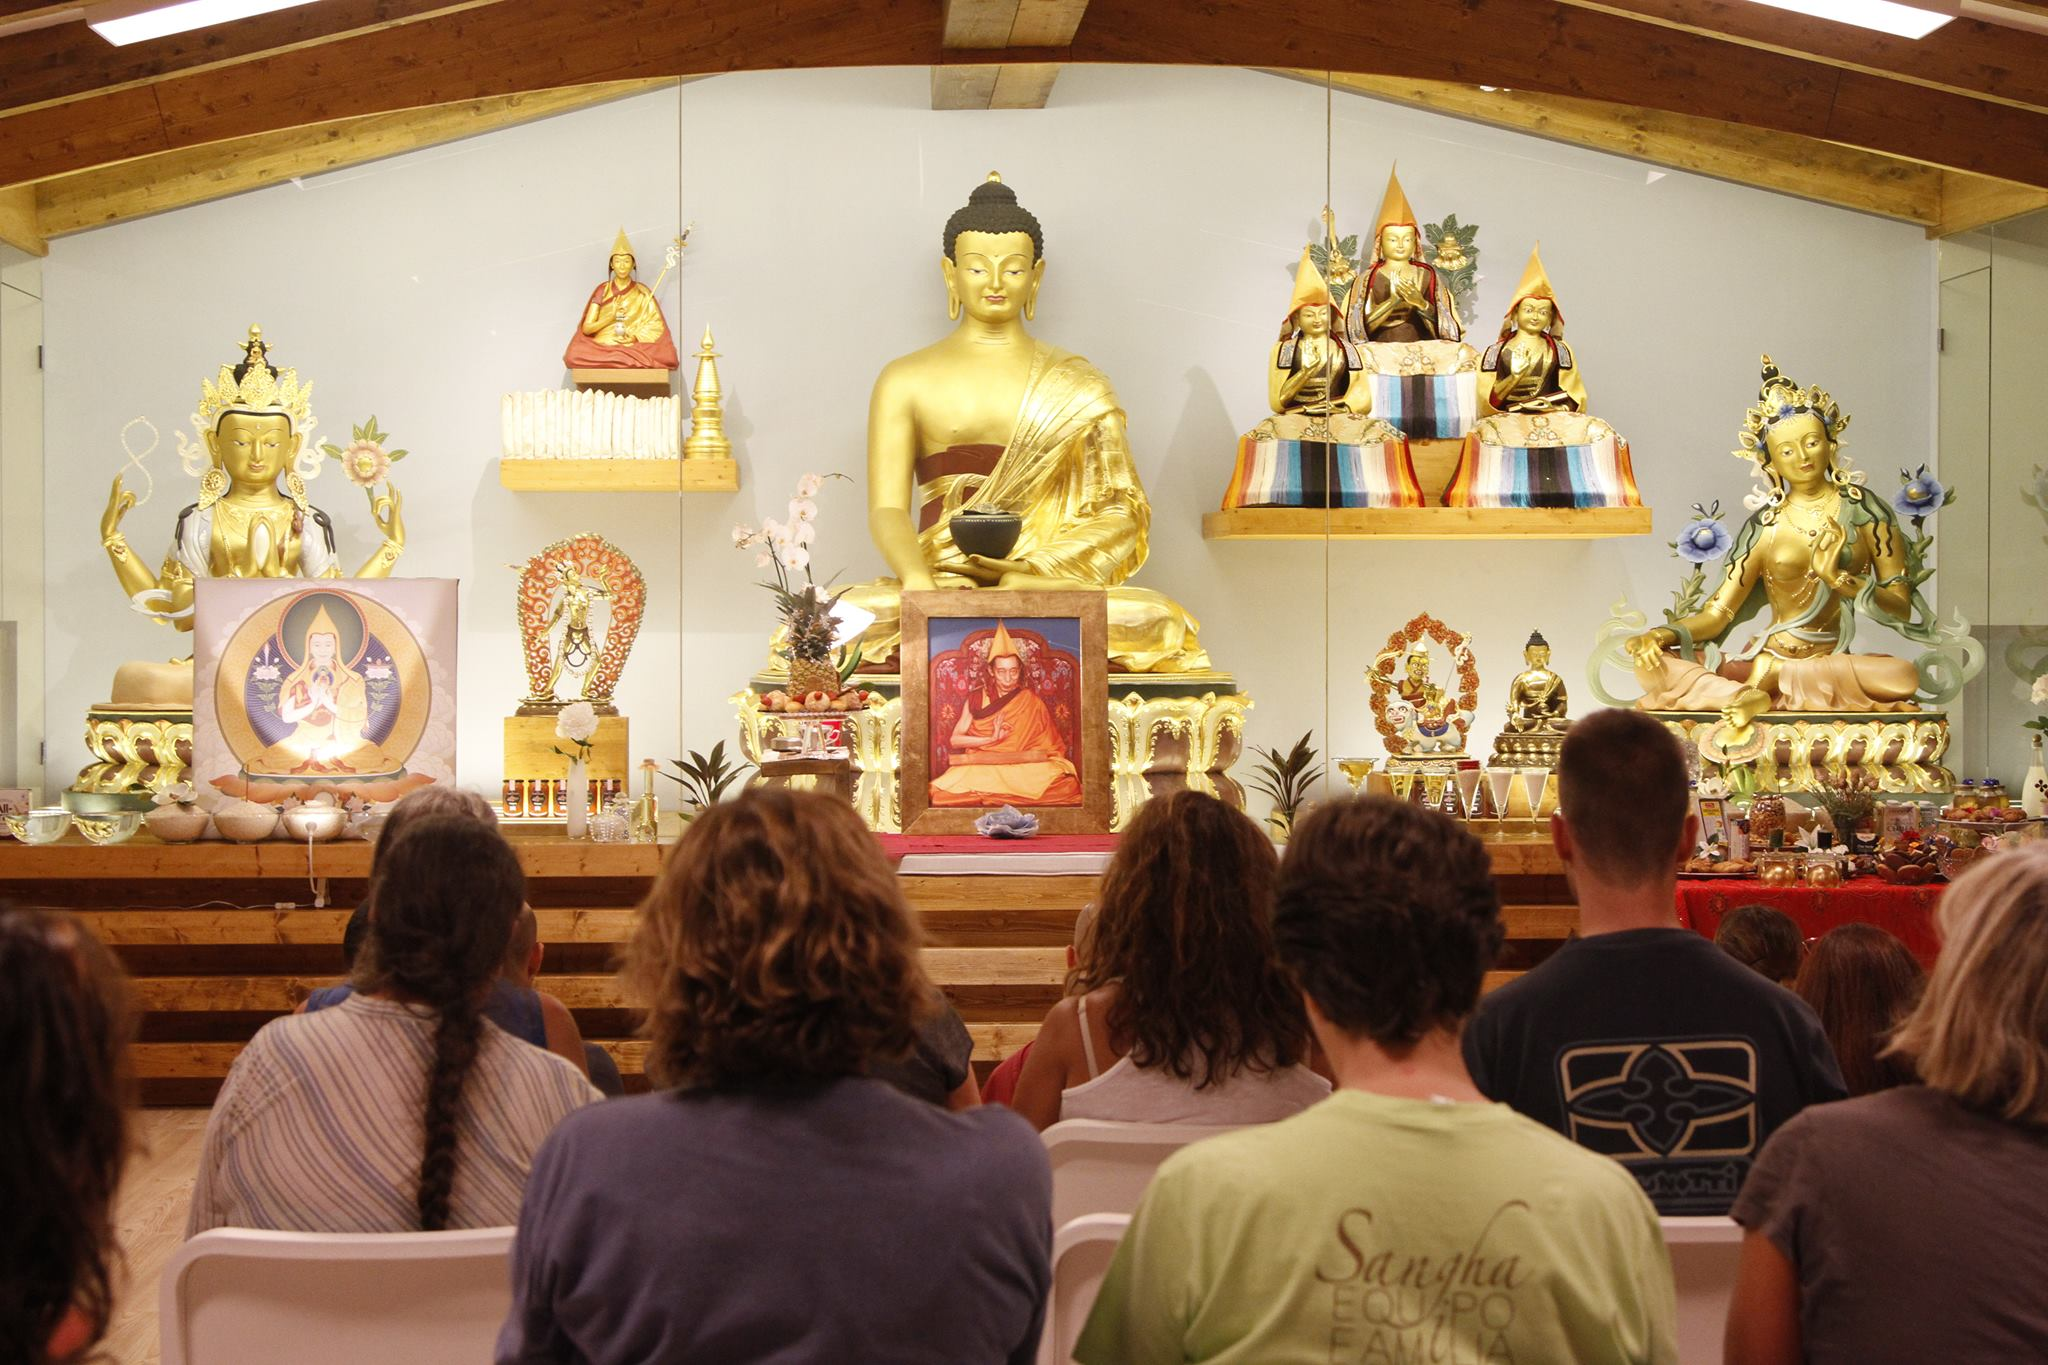 kadampa-meditation-center-barcelona-spain-10